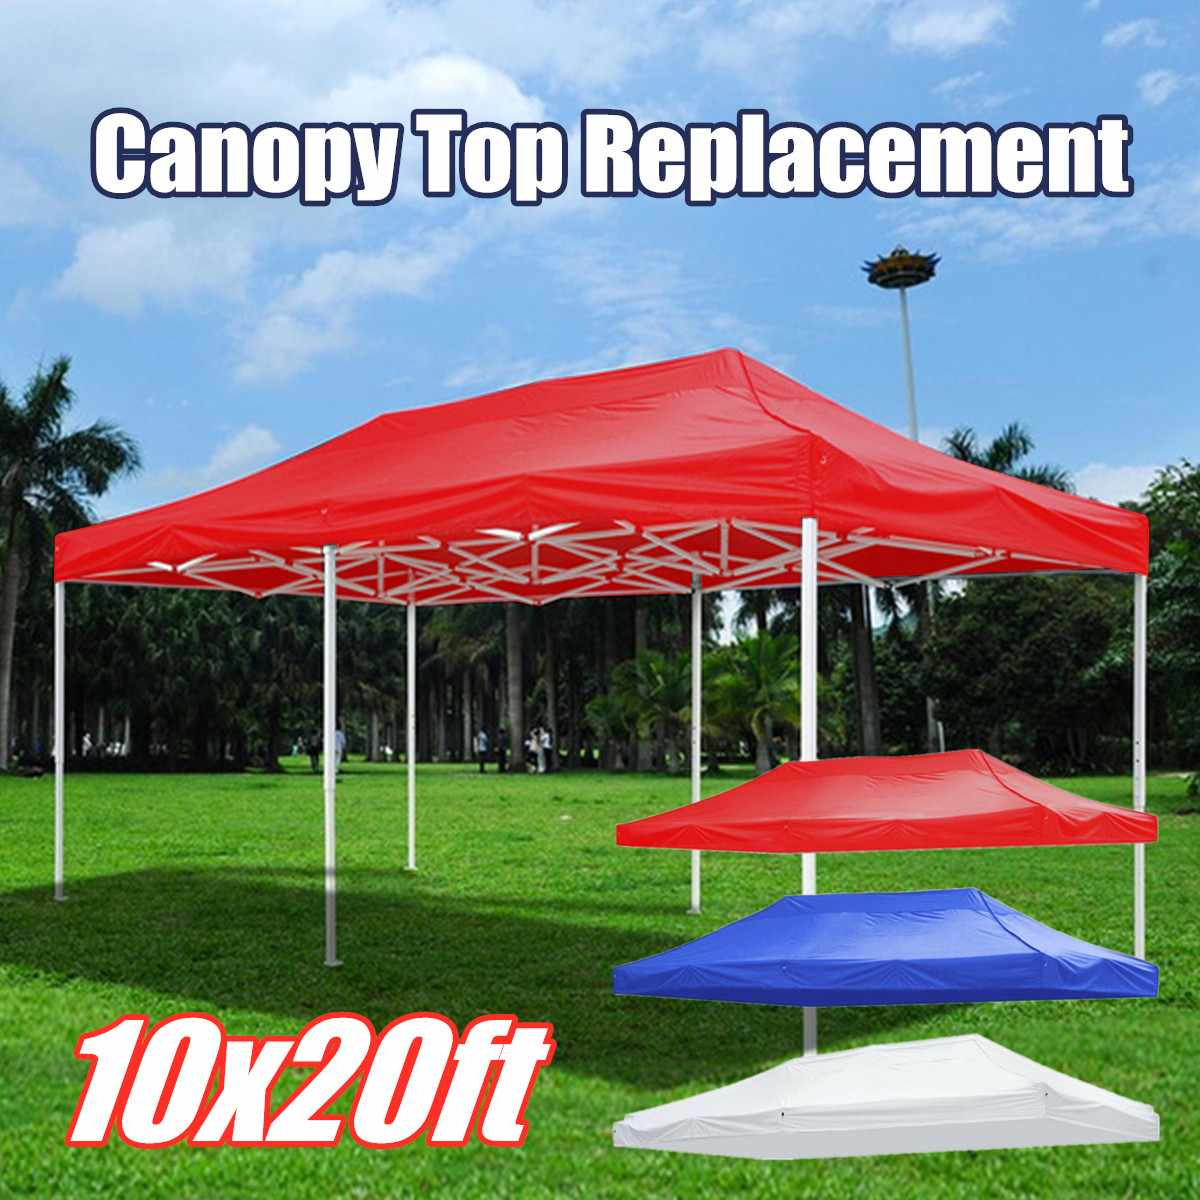 3x6m Replacement Party Tent Roof Top Cover Floding Pop-up Marquee Gazebo Canopy